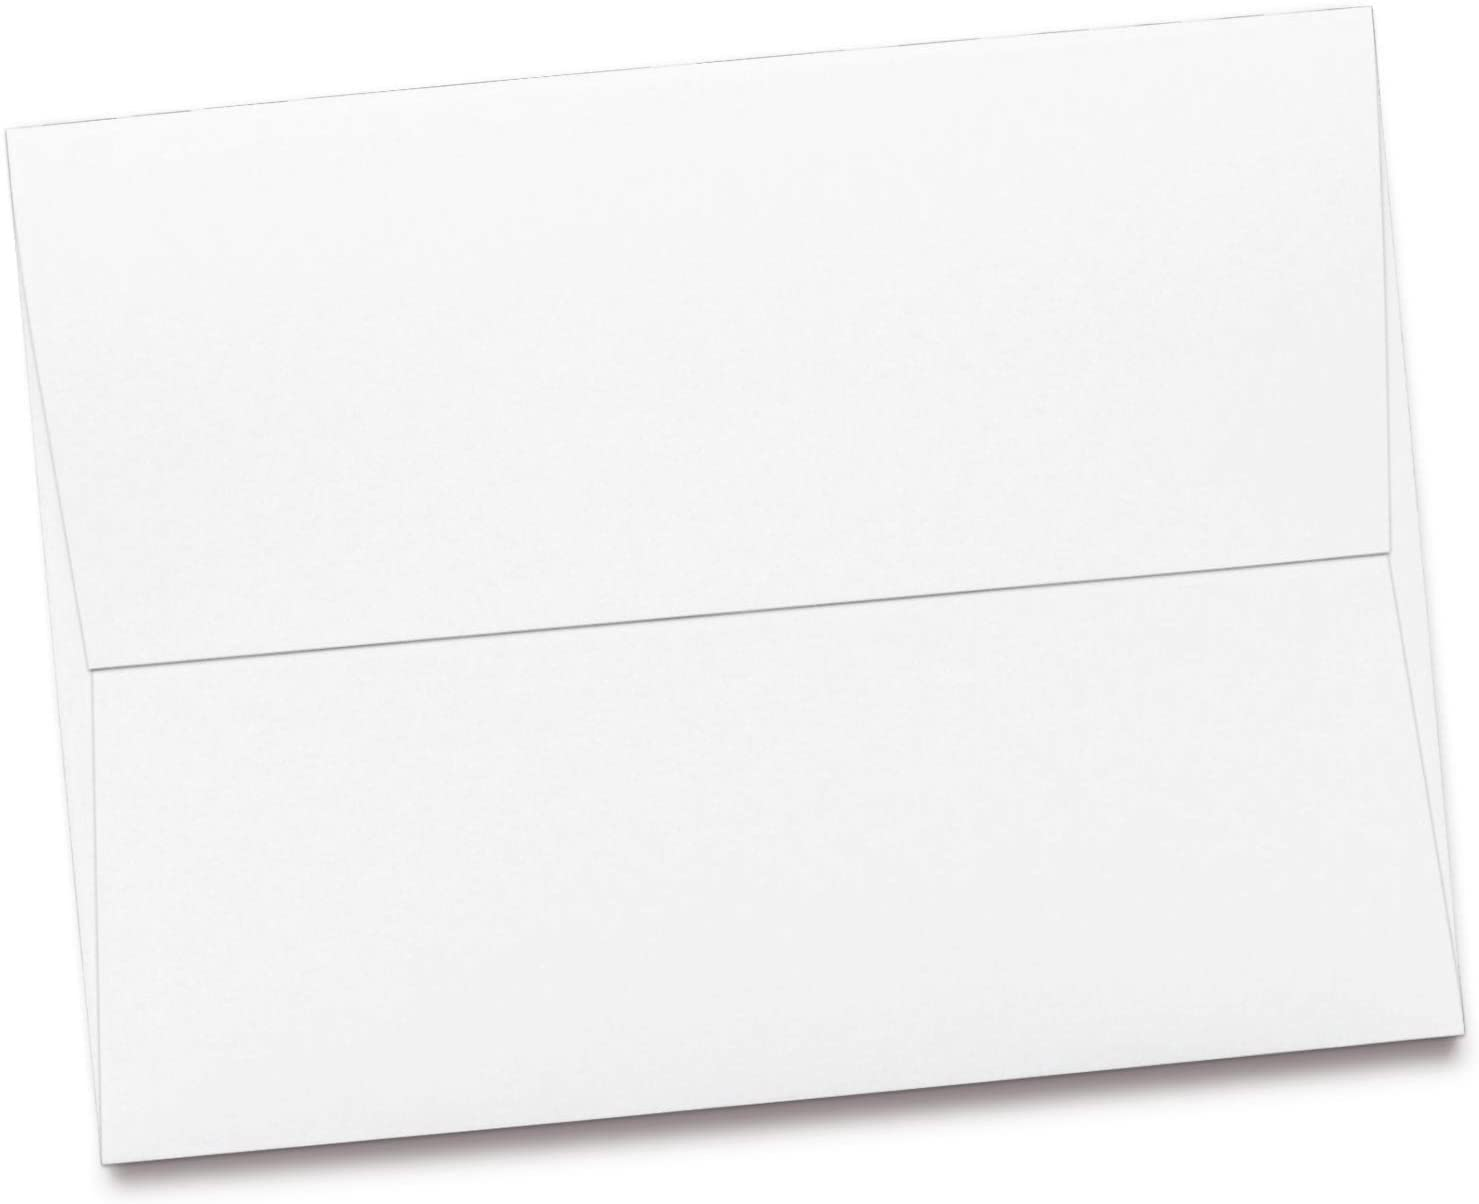 Bulk 1000 Piece Pack - Starbrite Opaque Select A7 Envelopes in White - 5 1/4 x 7 1/4 - Economy 24lb Bond Smooth Vellum Finish - for Bulk Mailings, 5x7 Invitations, Postcards, Greeting Cards